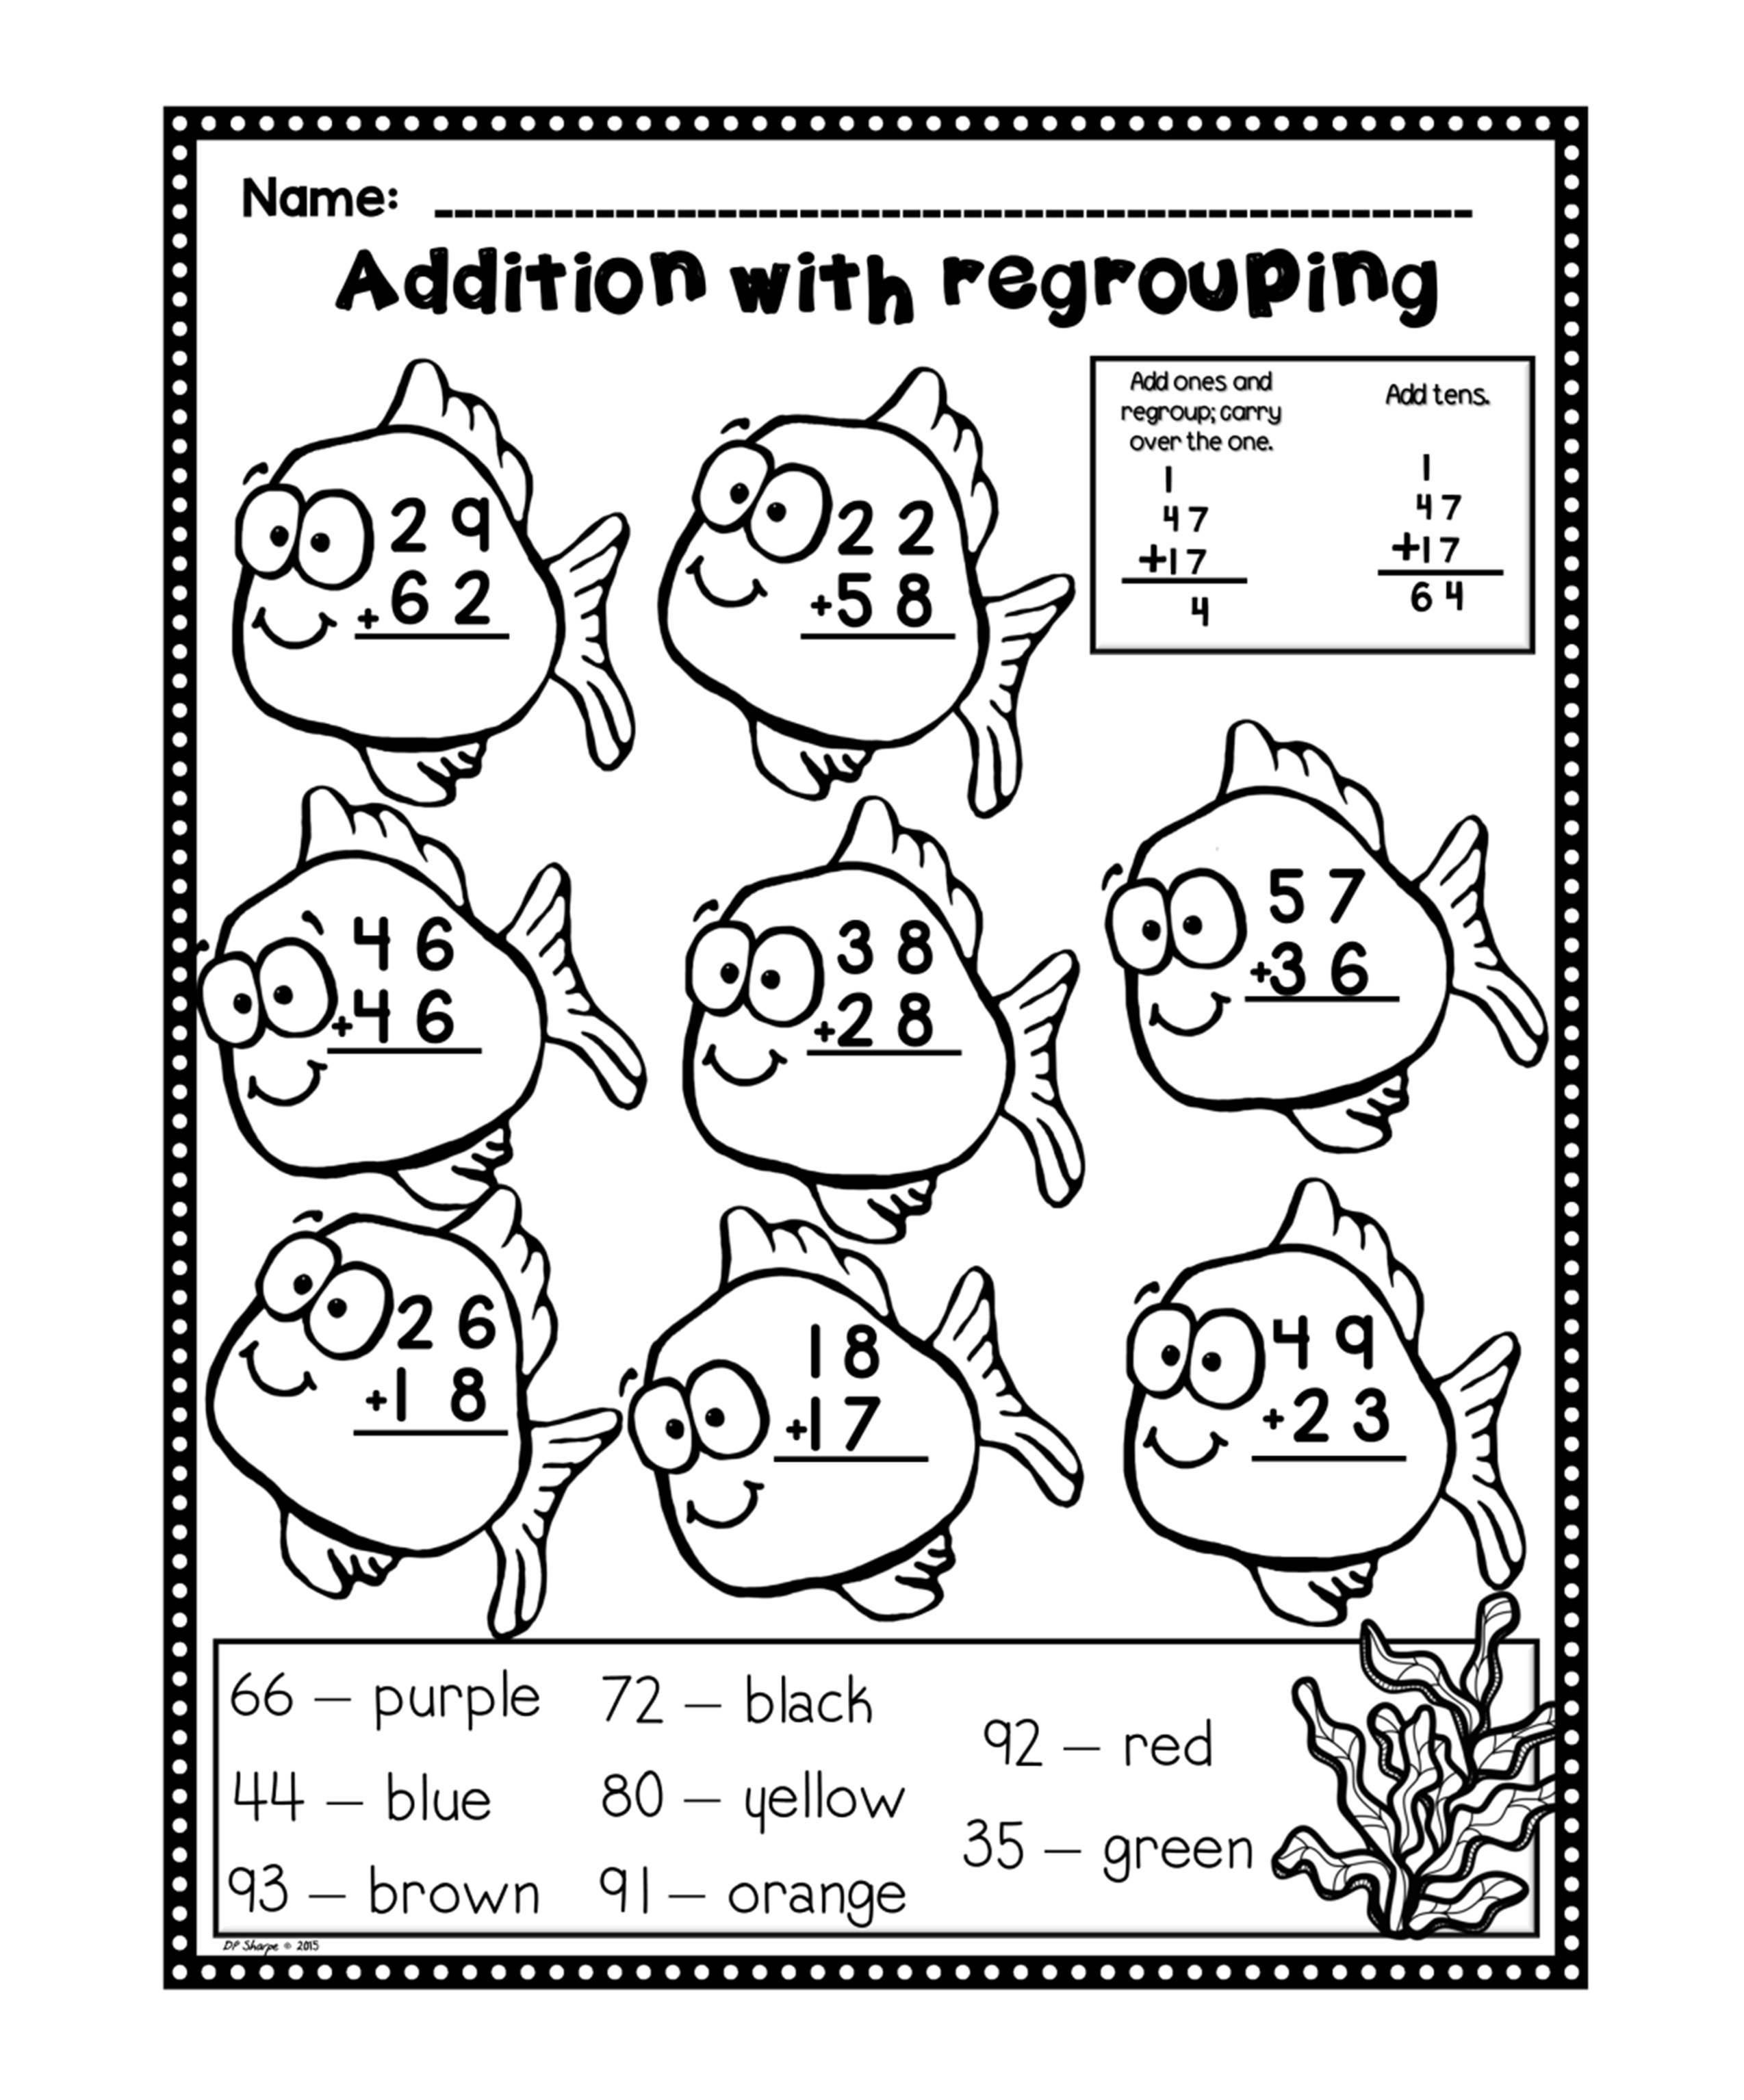 Addition With Regrouping Worksheets Fun Set Addition With Regrouping Worksheets Kindergarten Addition Worksheets Color Worksheets Adding with regrouping grade